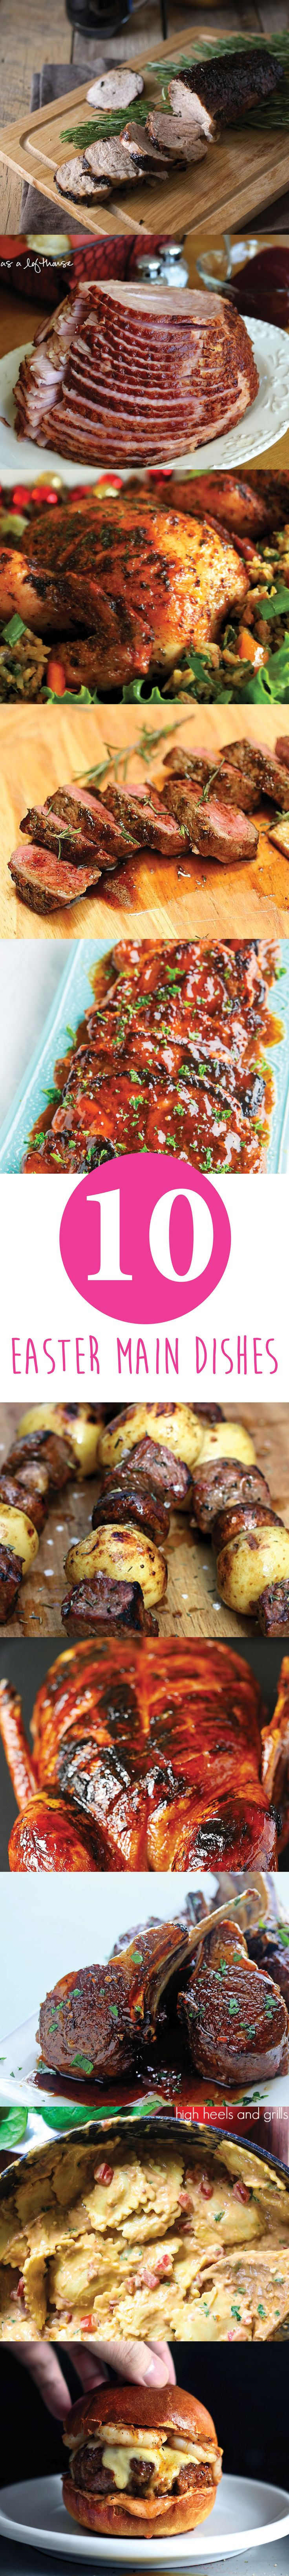 10 Easter Main Dishes | All Kinds of Yumm